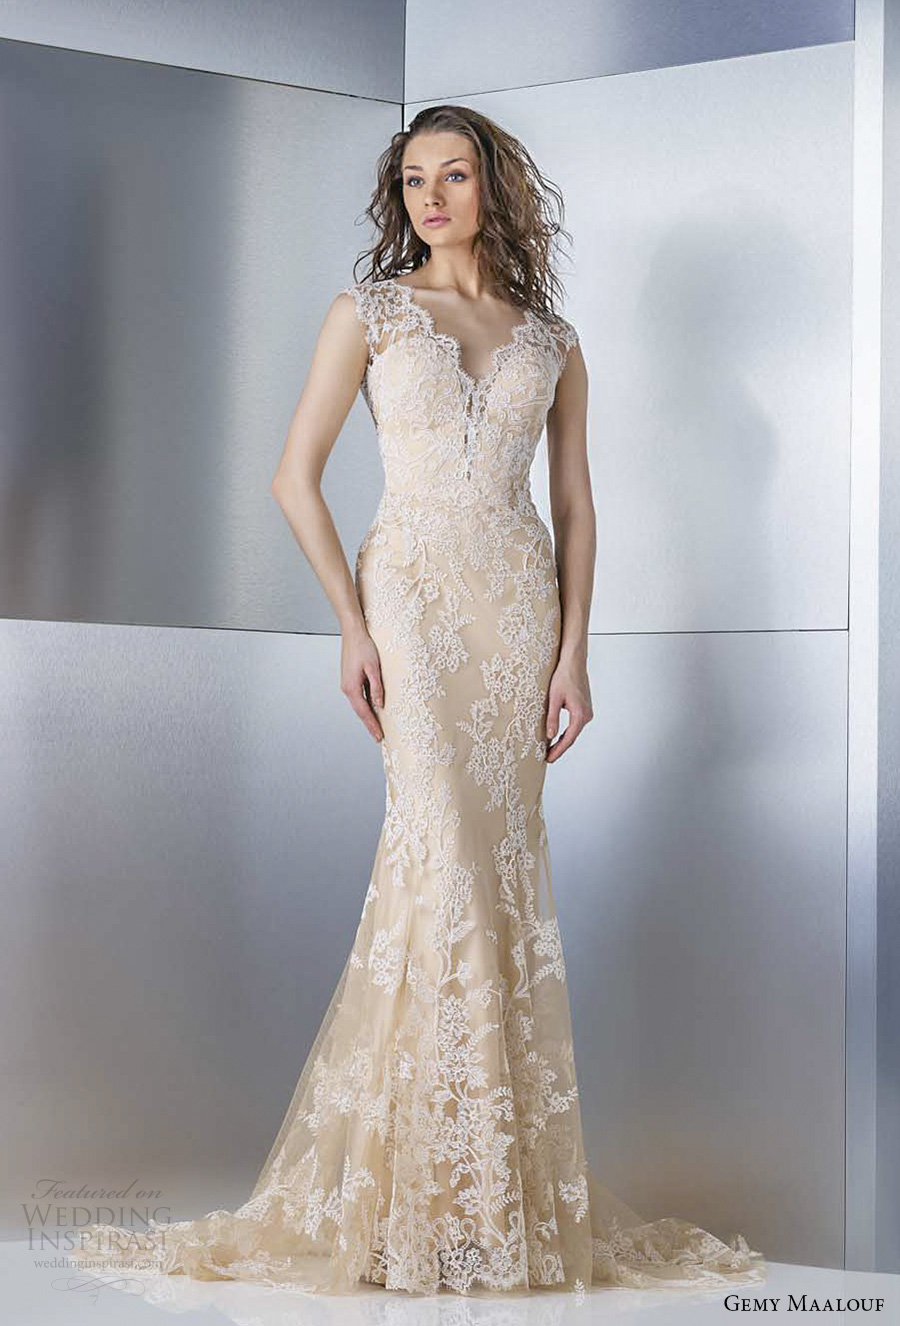 gemy maalouf 2017 bridal sleeveless thick lace strap sweetheart neckline full embellishment gold color elegant fit and flare wedding dress keyhole back sweep train (4855) mv